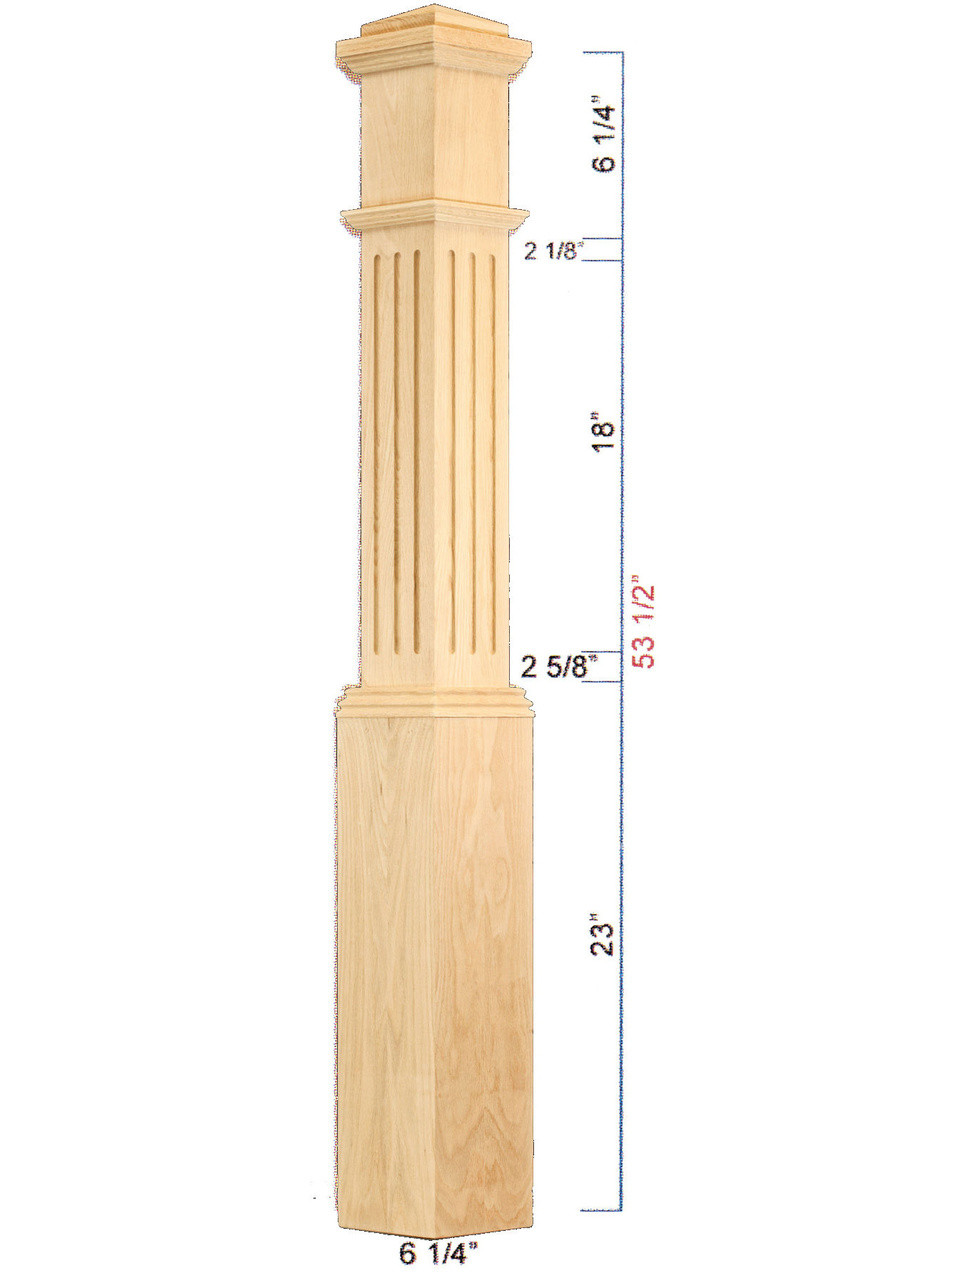 C-4091-F Fluted Traditional Box Newel Dimensional Information